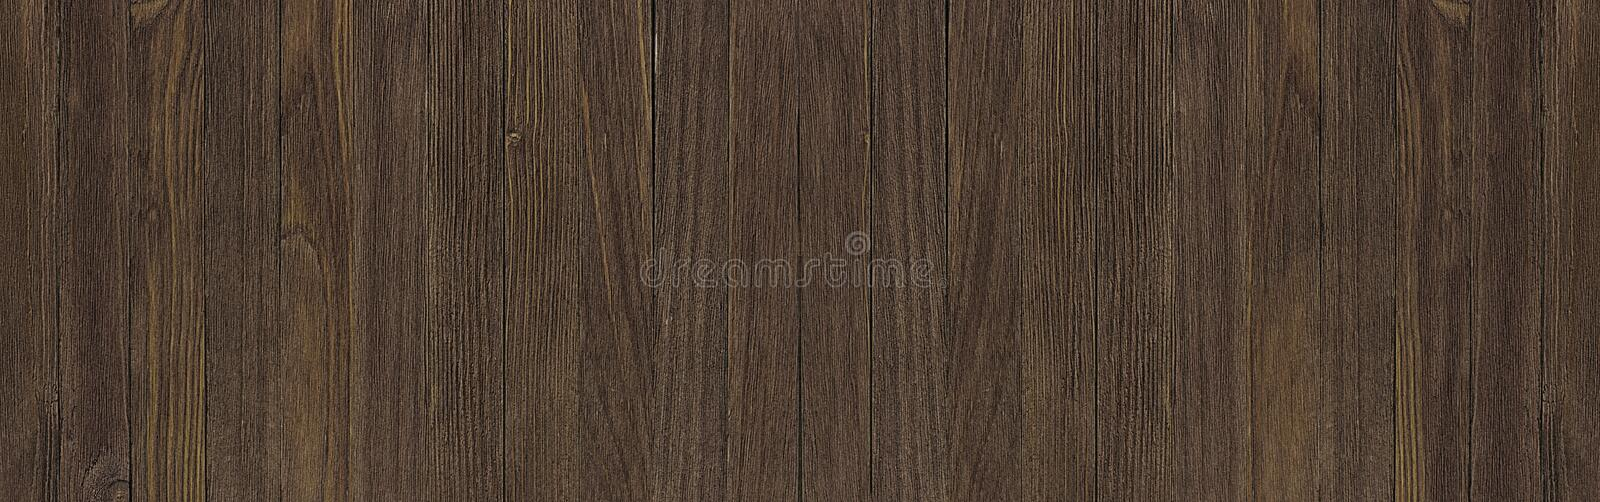 Real natural wood texture and surface background, panorama royalty free stock photos